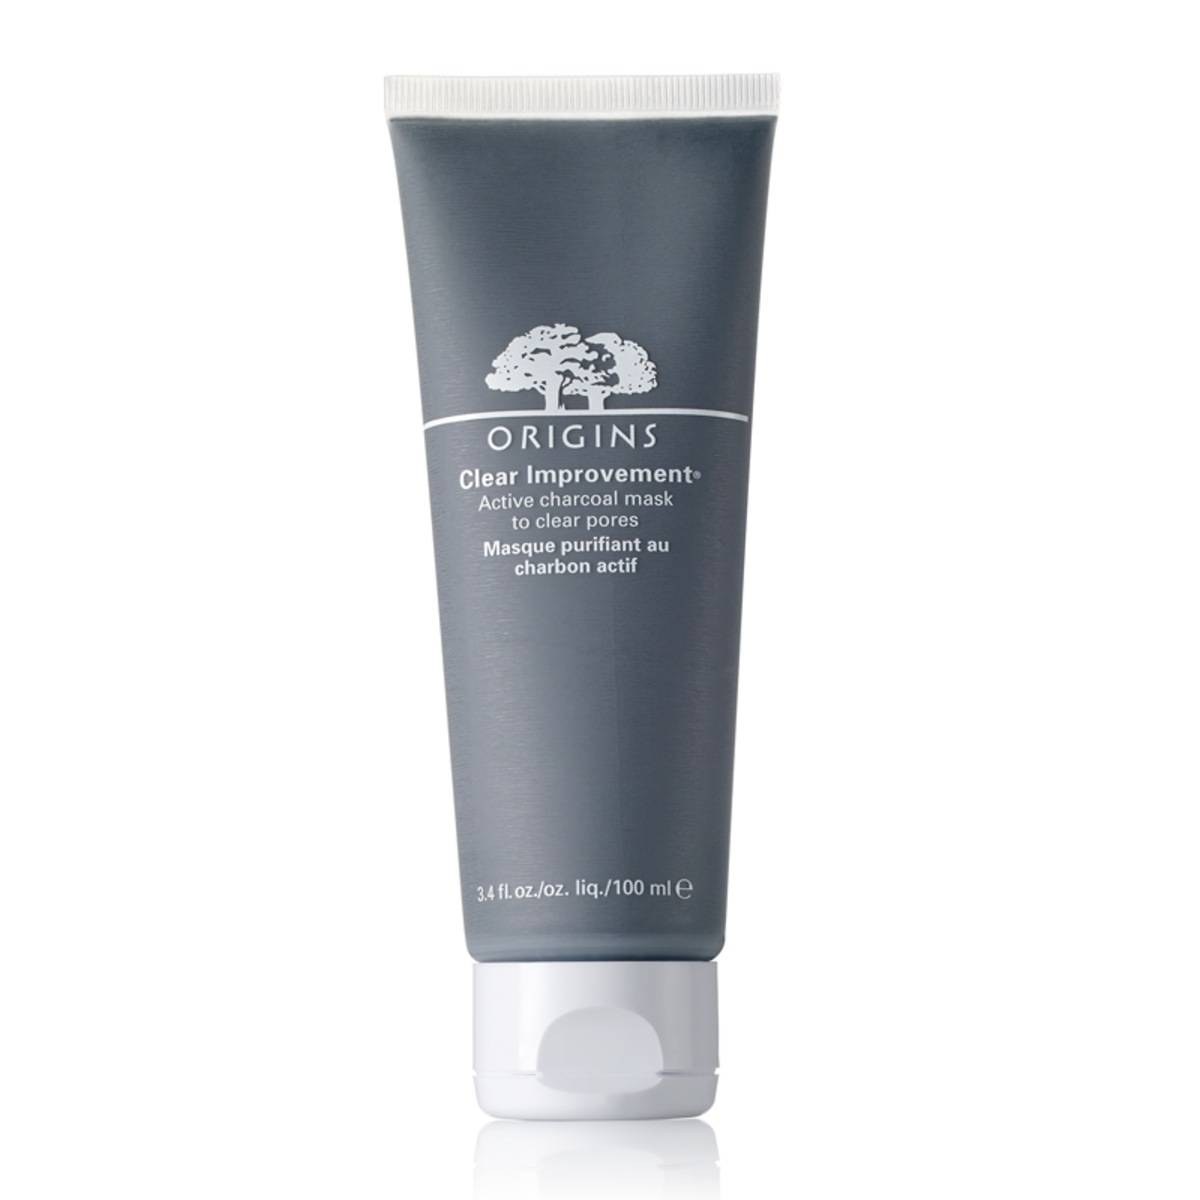 Origins Clear Improvement Active Charcoal Mask to Clear Pores, $26, available at Sephora.